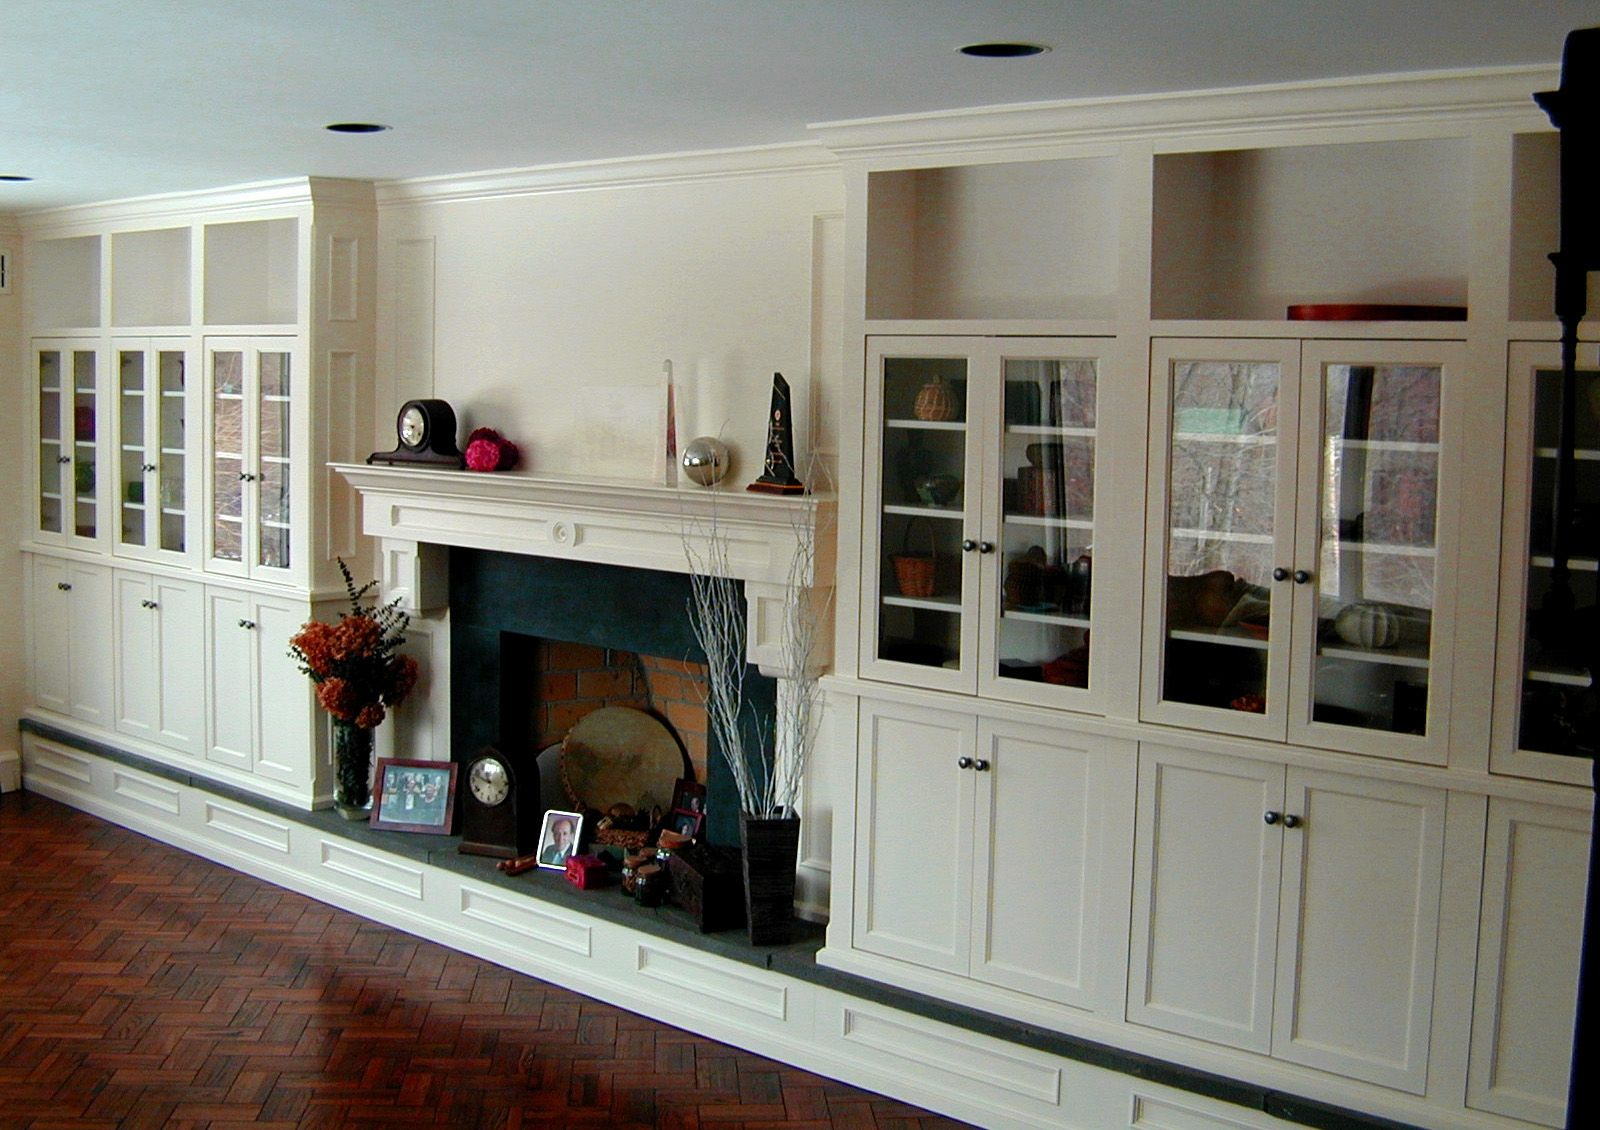 Custom Display Cabinetry With Fireplace Surround By Hudson